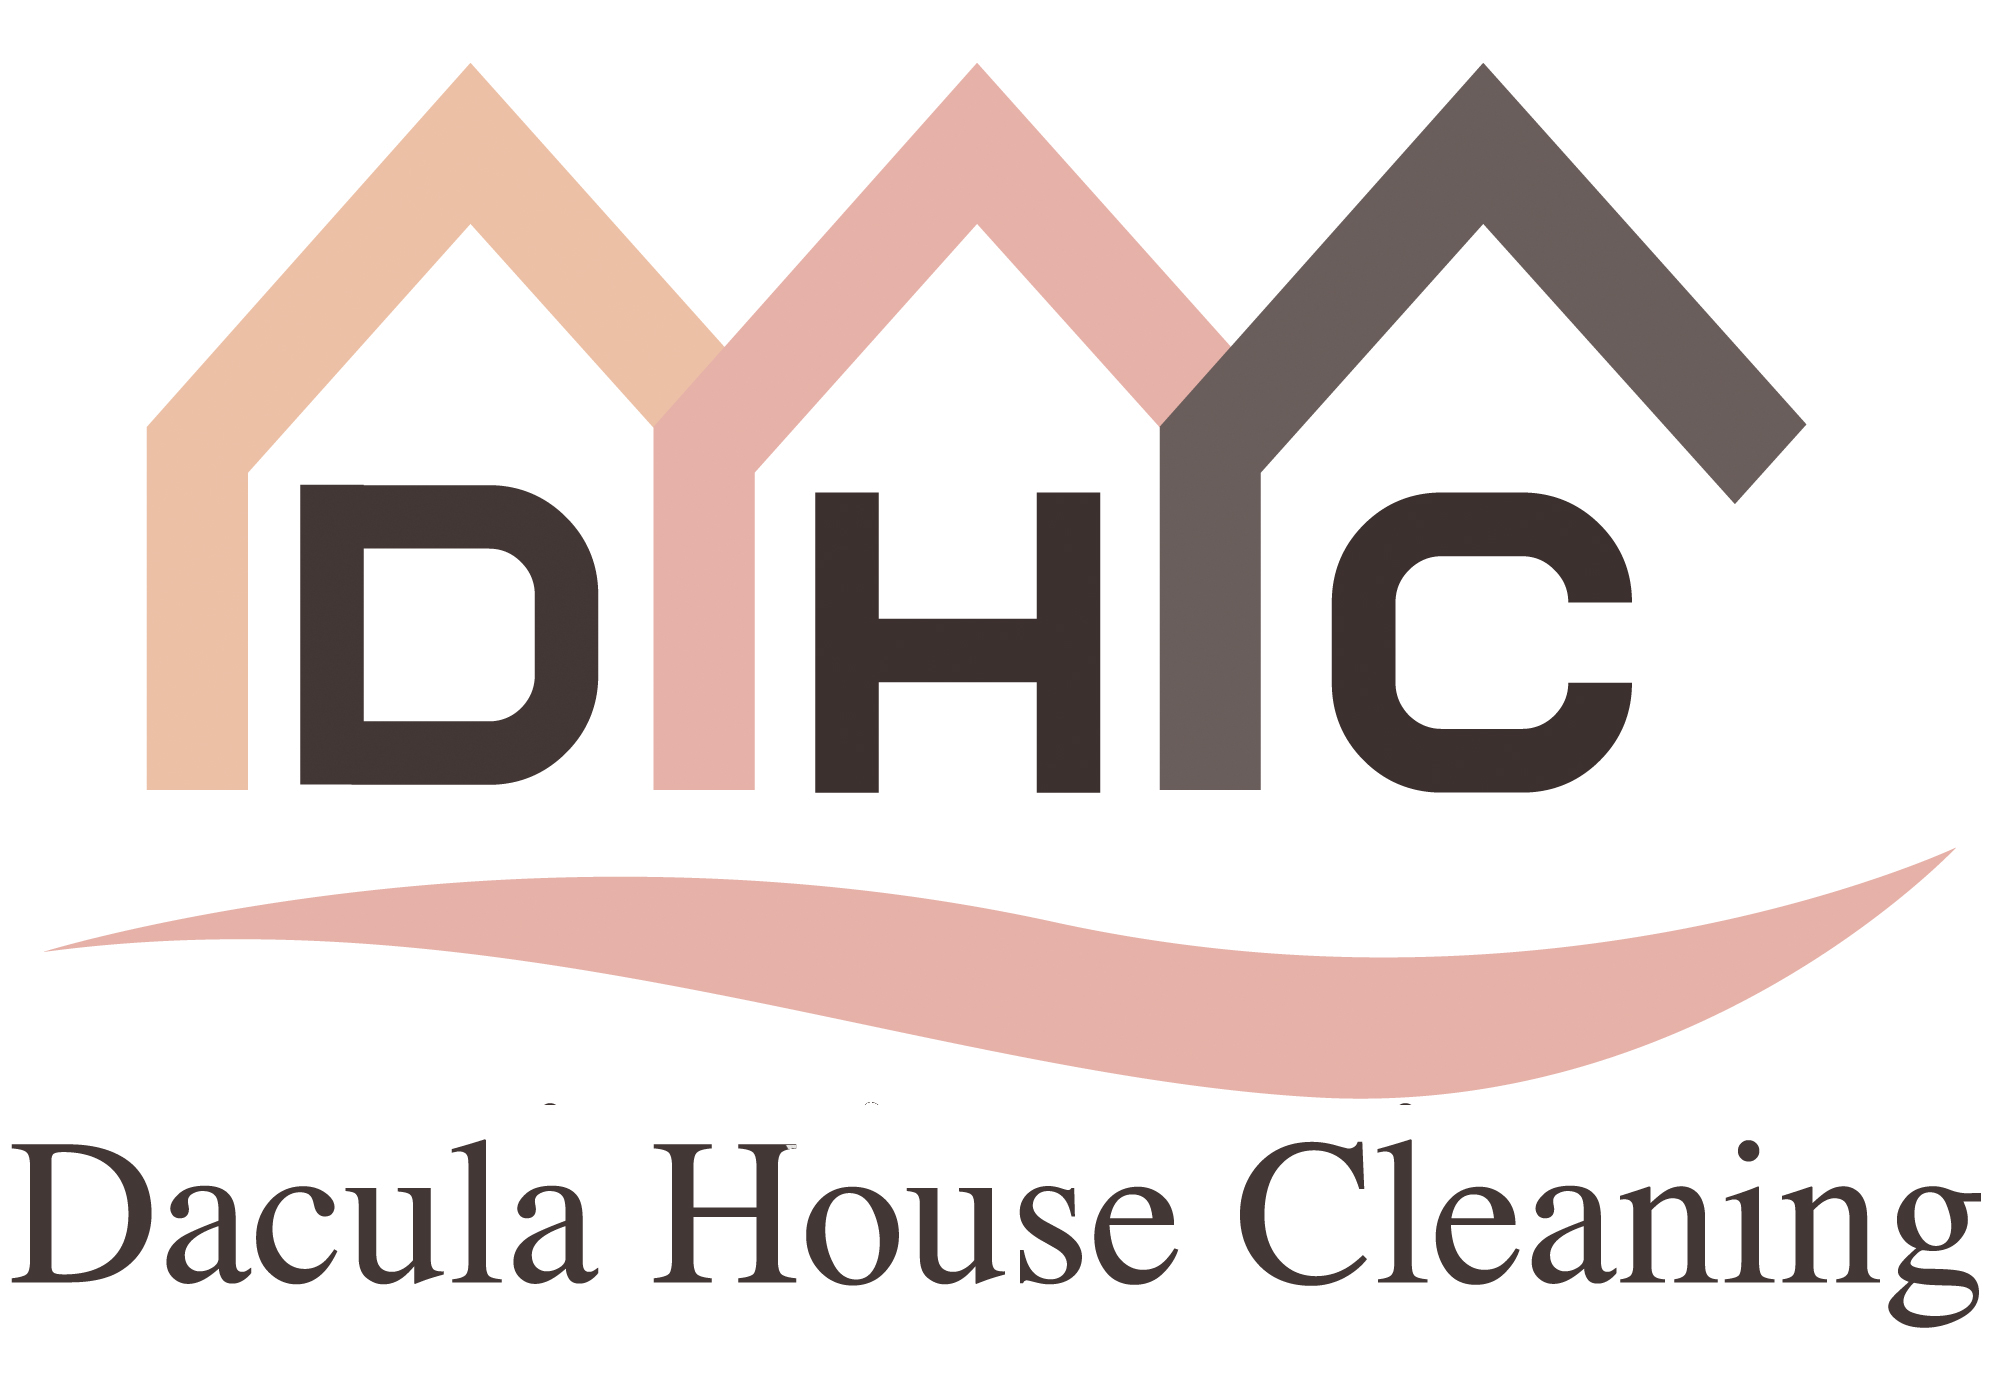 dacula-house-cleaning